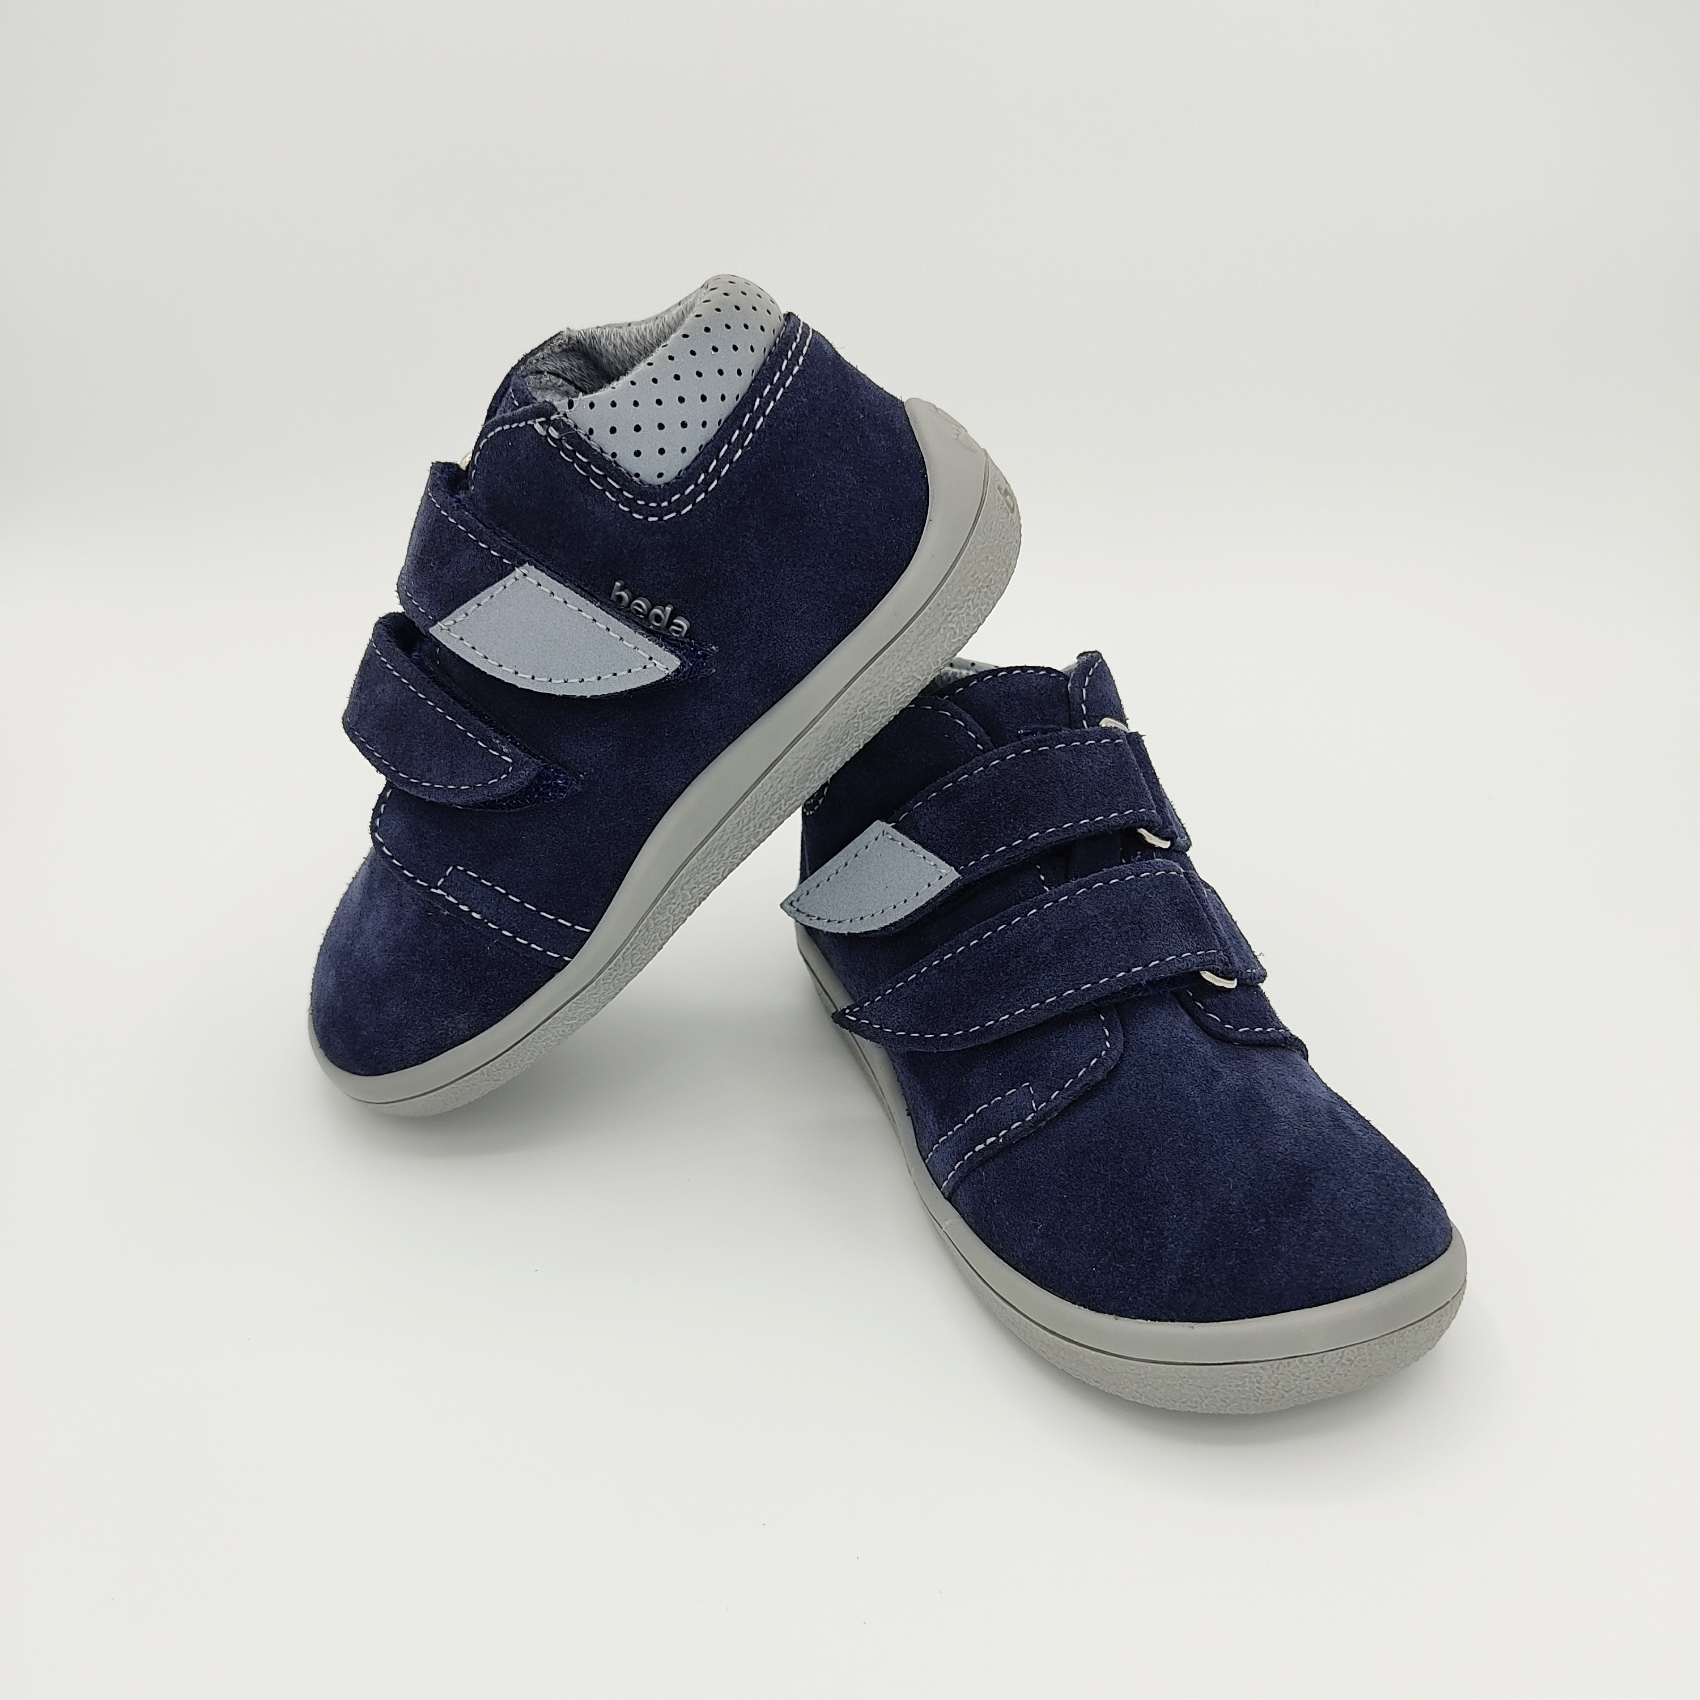 Beda - Chaussures montantes - Lucas